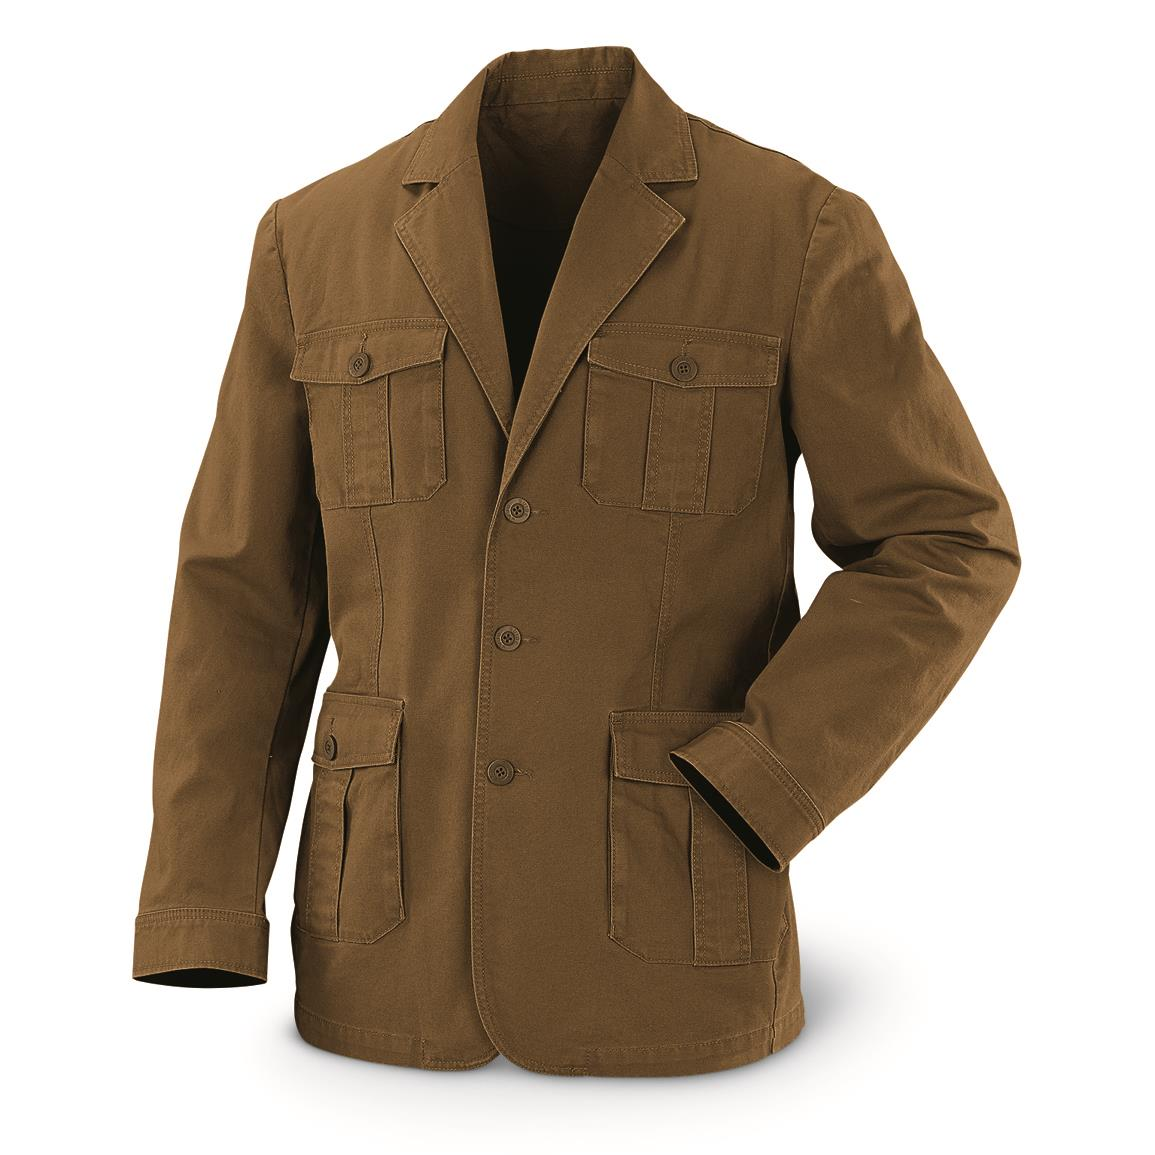 Guide Gear Men's Sportsman's Field Jacket, British Khaki